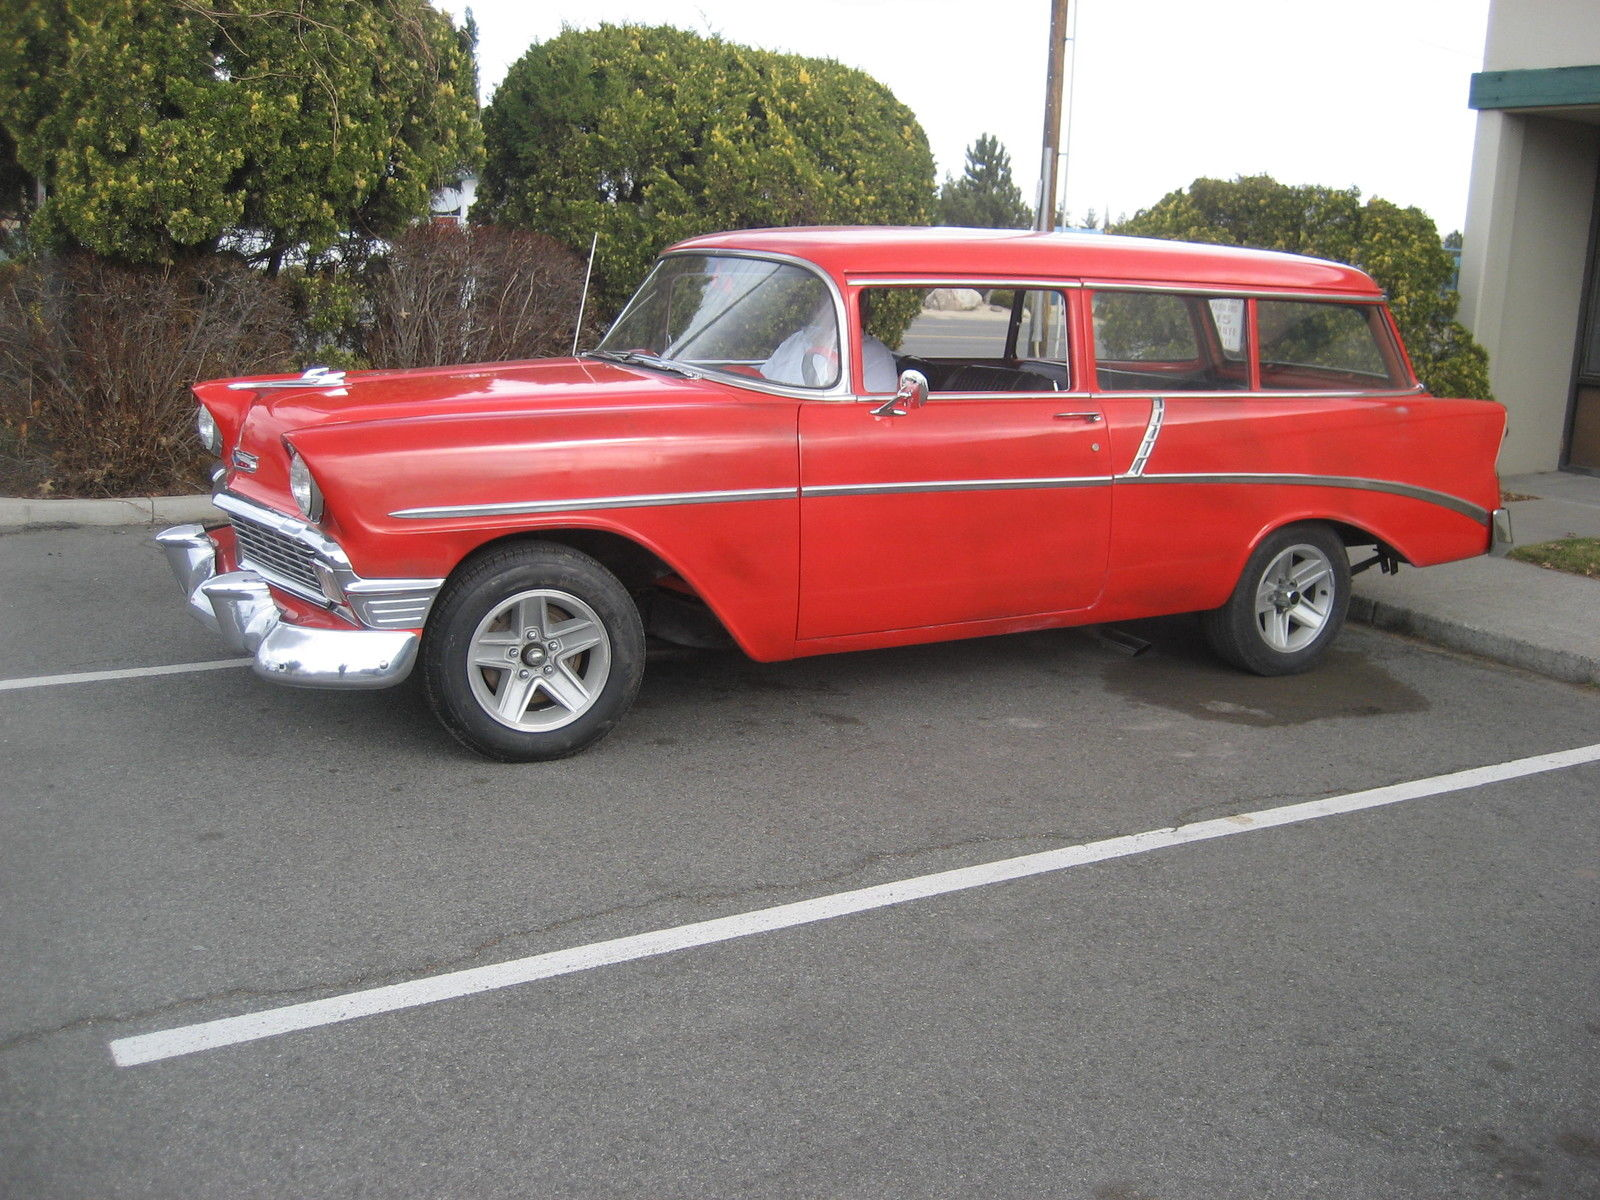 56 Chevy 2 Door Wagon 350motor 4speed For Sale In Reno Nevada United States